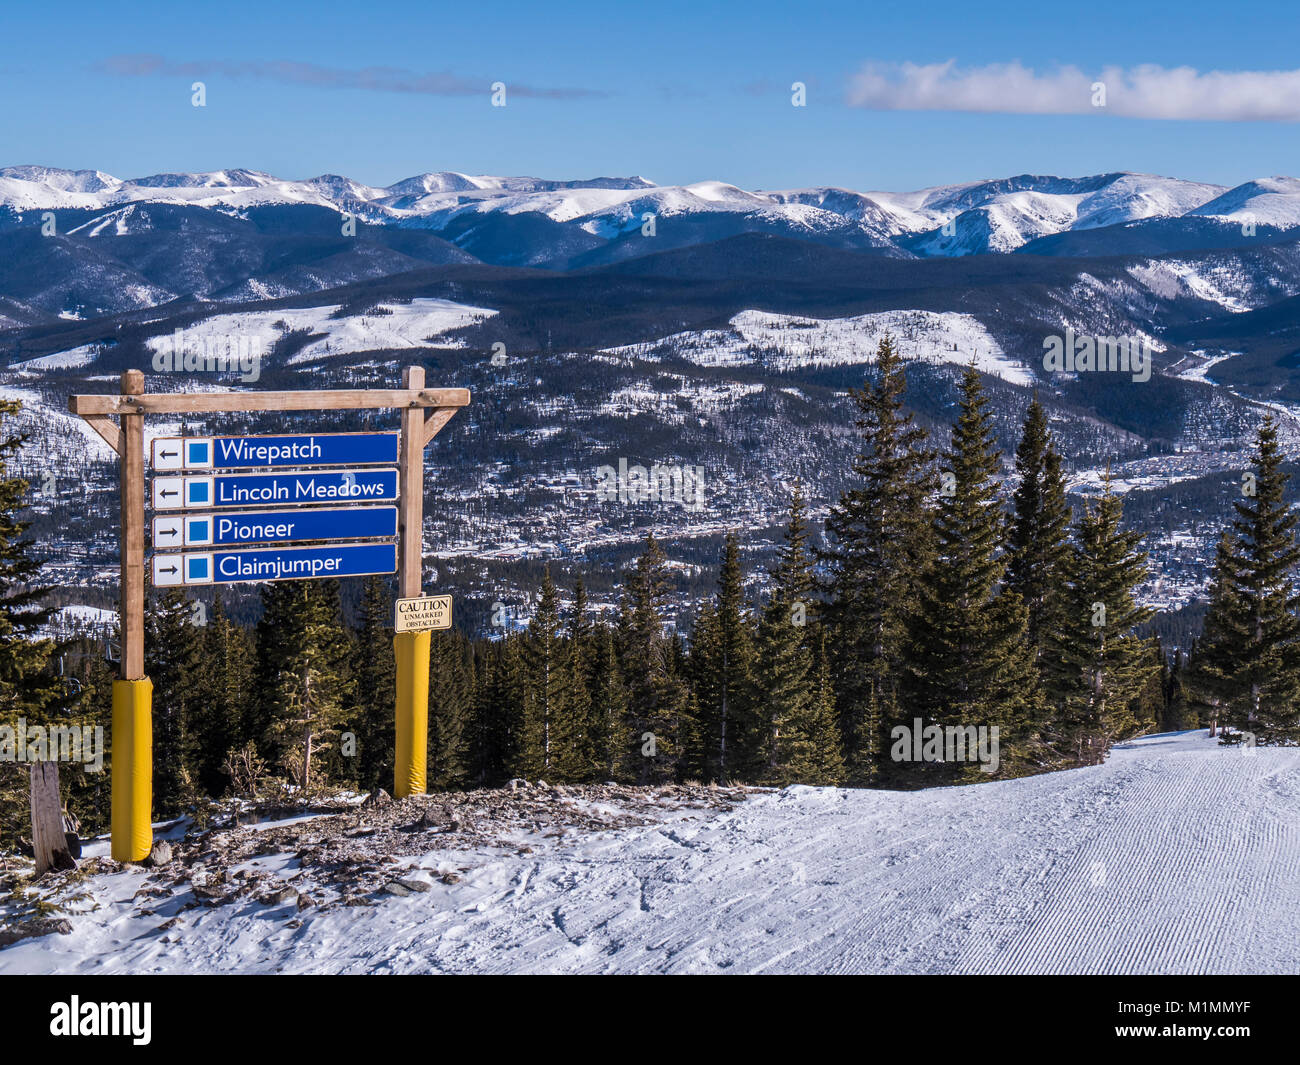 Ski trail sign atop Peak 7, Breckenridge Ski Resort, Breckenridge, Colorado. - Stock Image